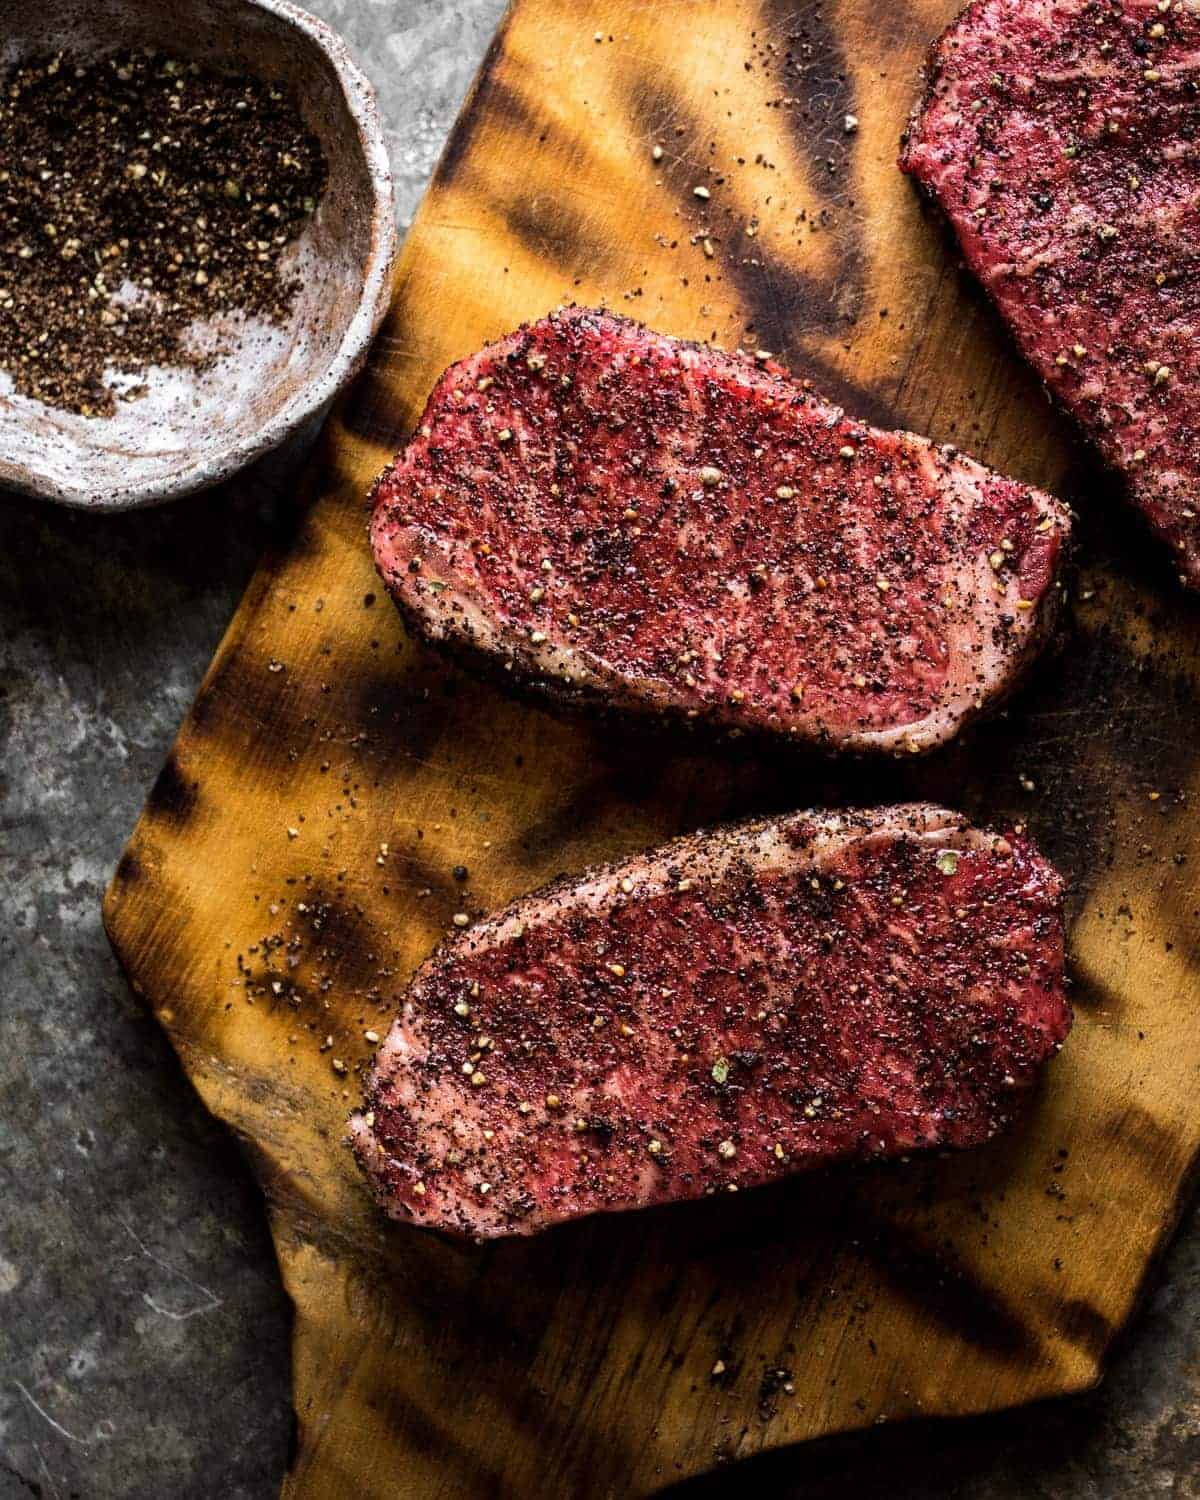 strip steaks covered in coffee seasoning mix resting on a vintage wooden cutting board.